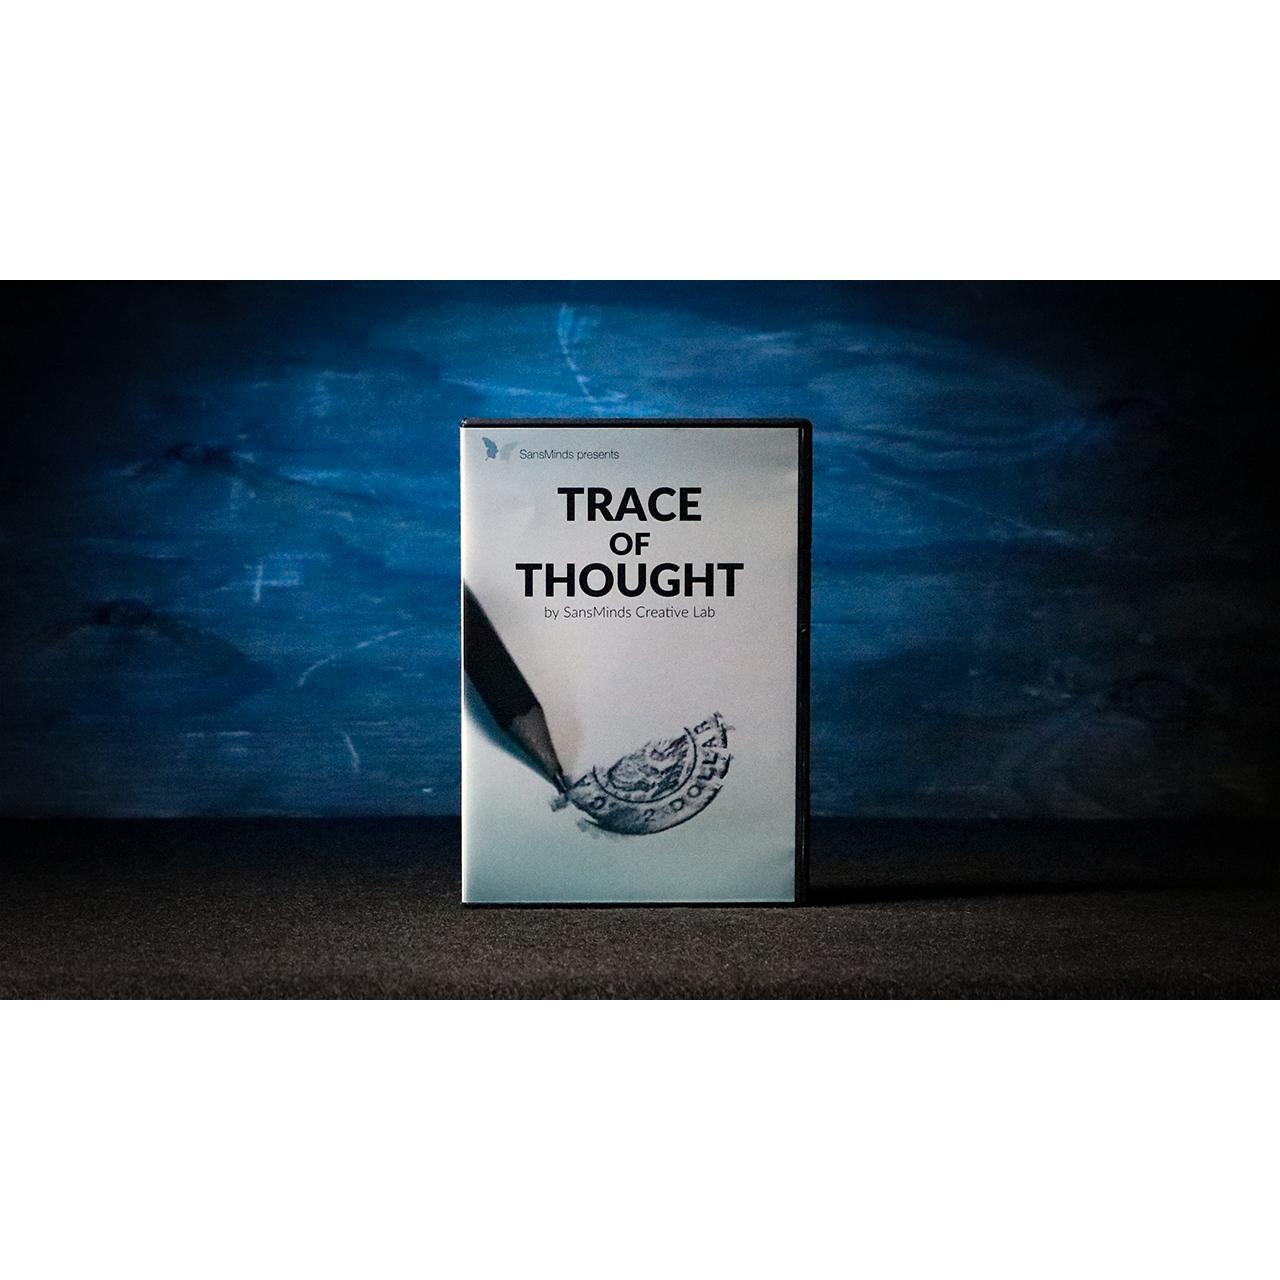 Trace of Thought (DVD and Props) by SansMinds Creative Lab DVD